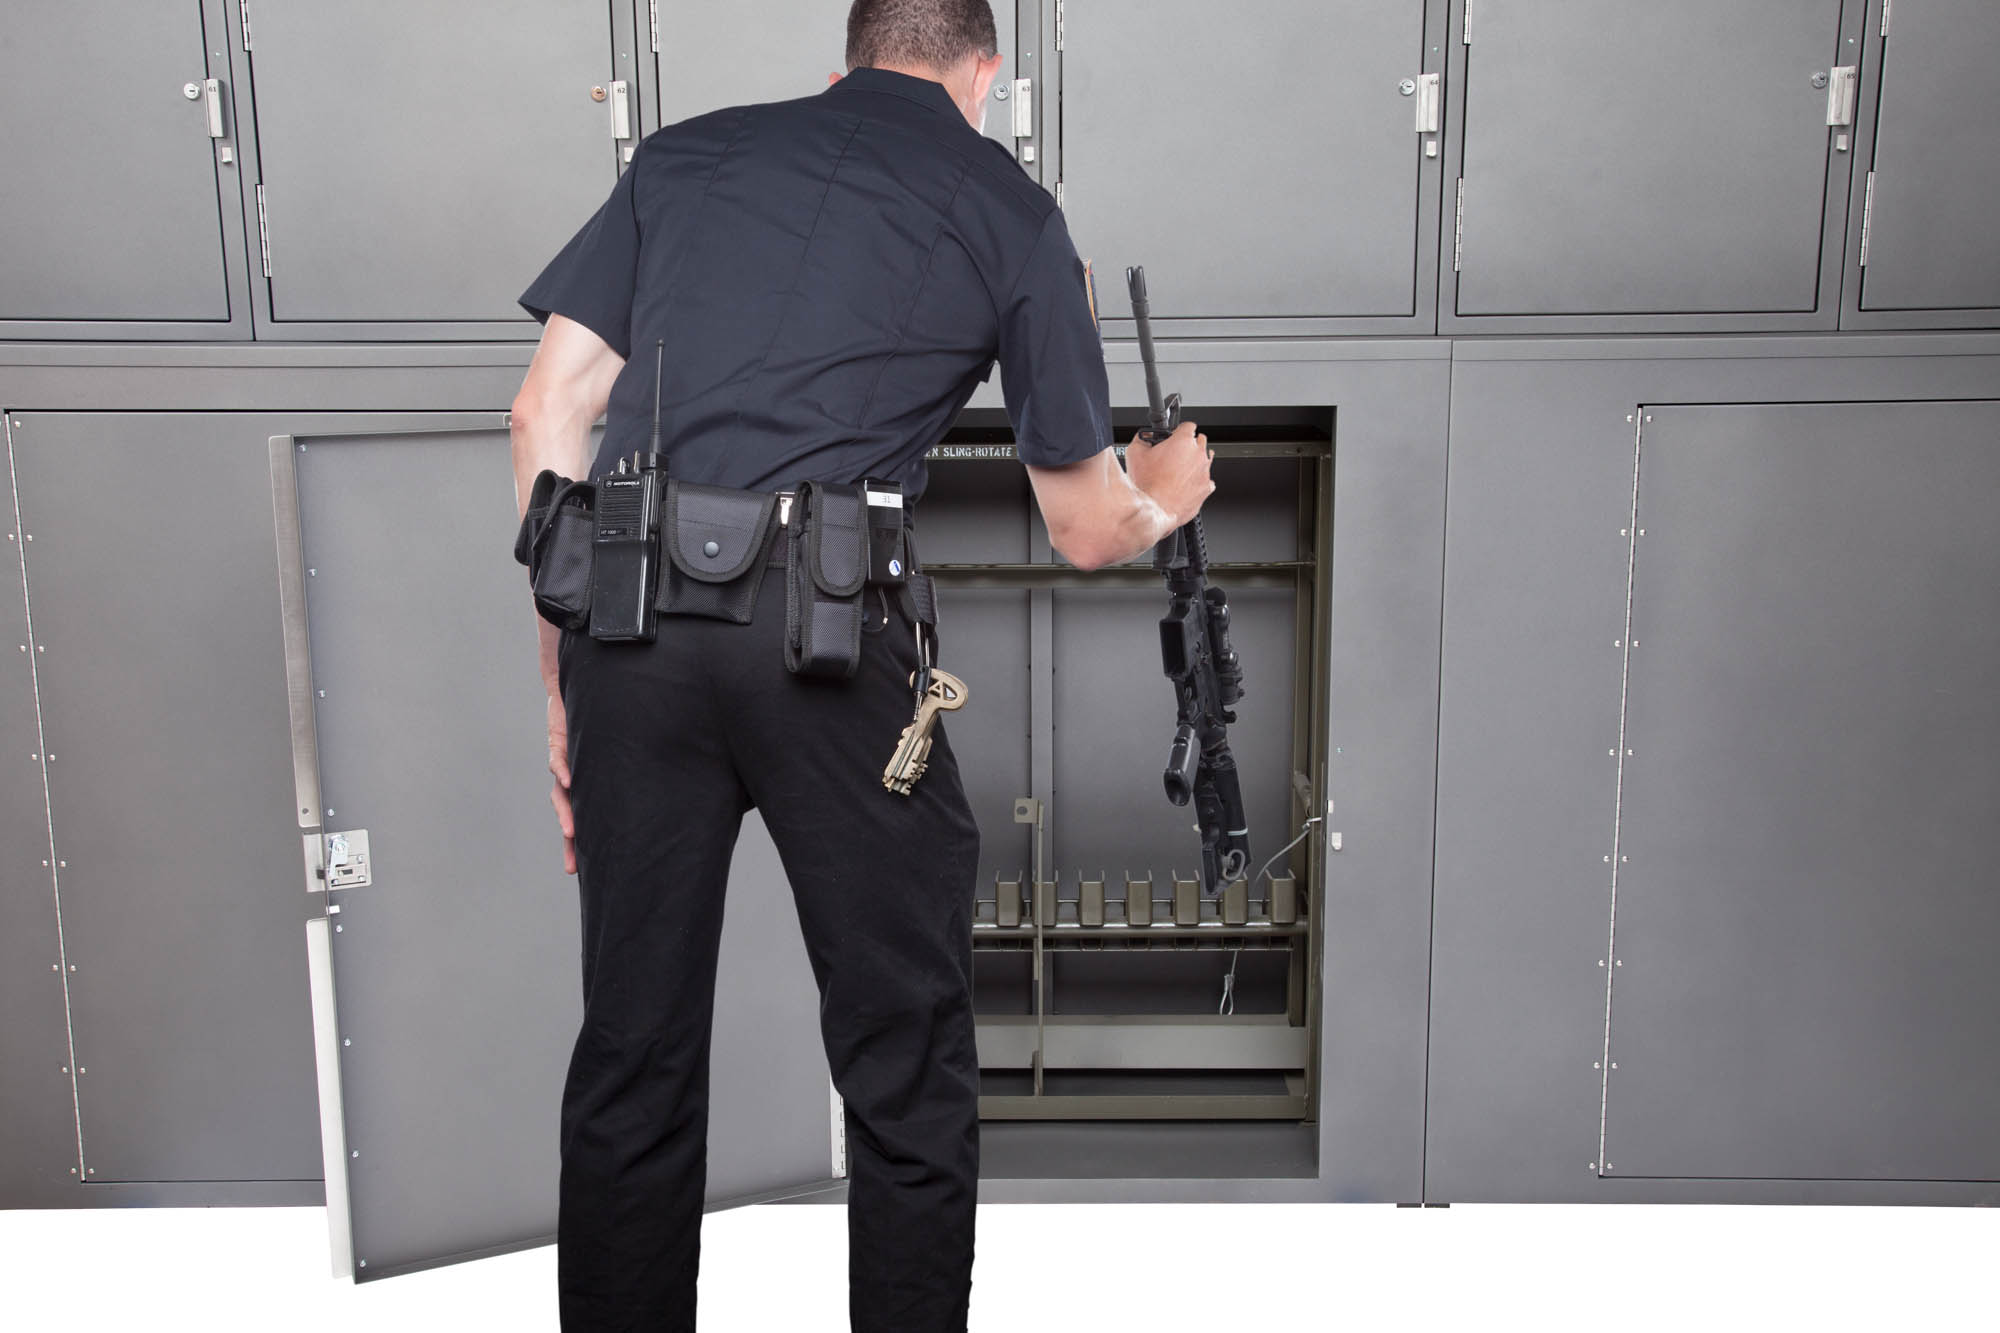 Officer Rifle Locker